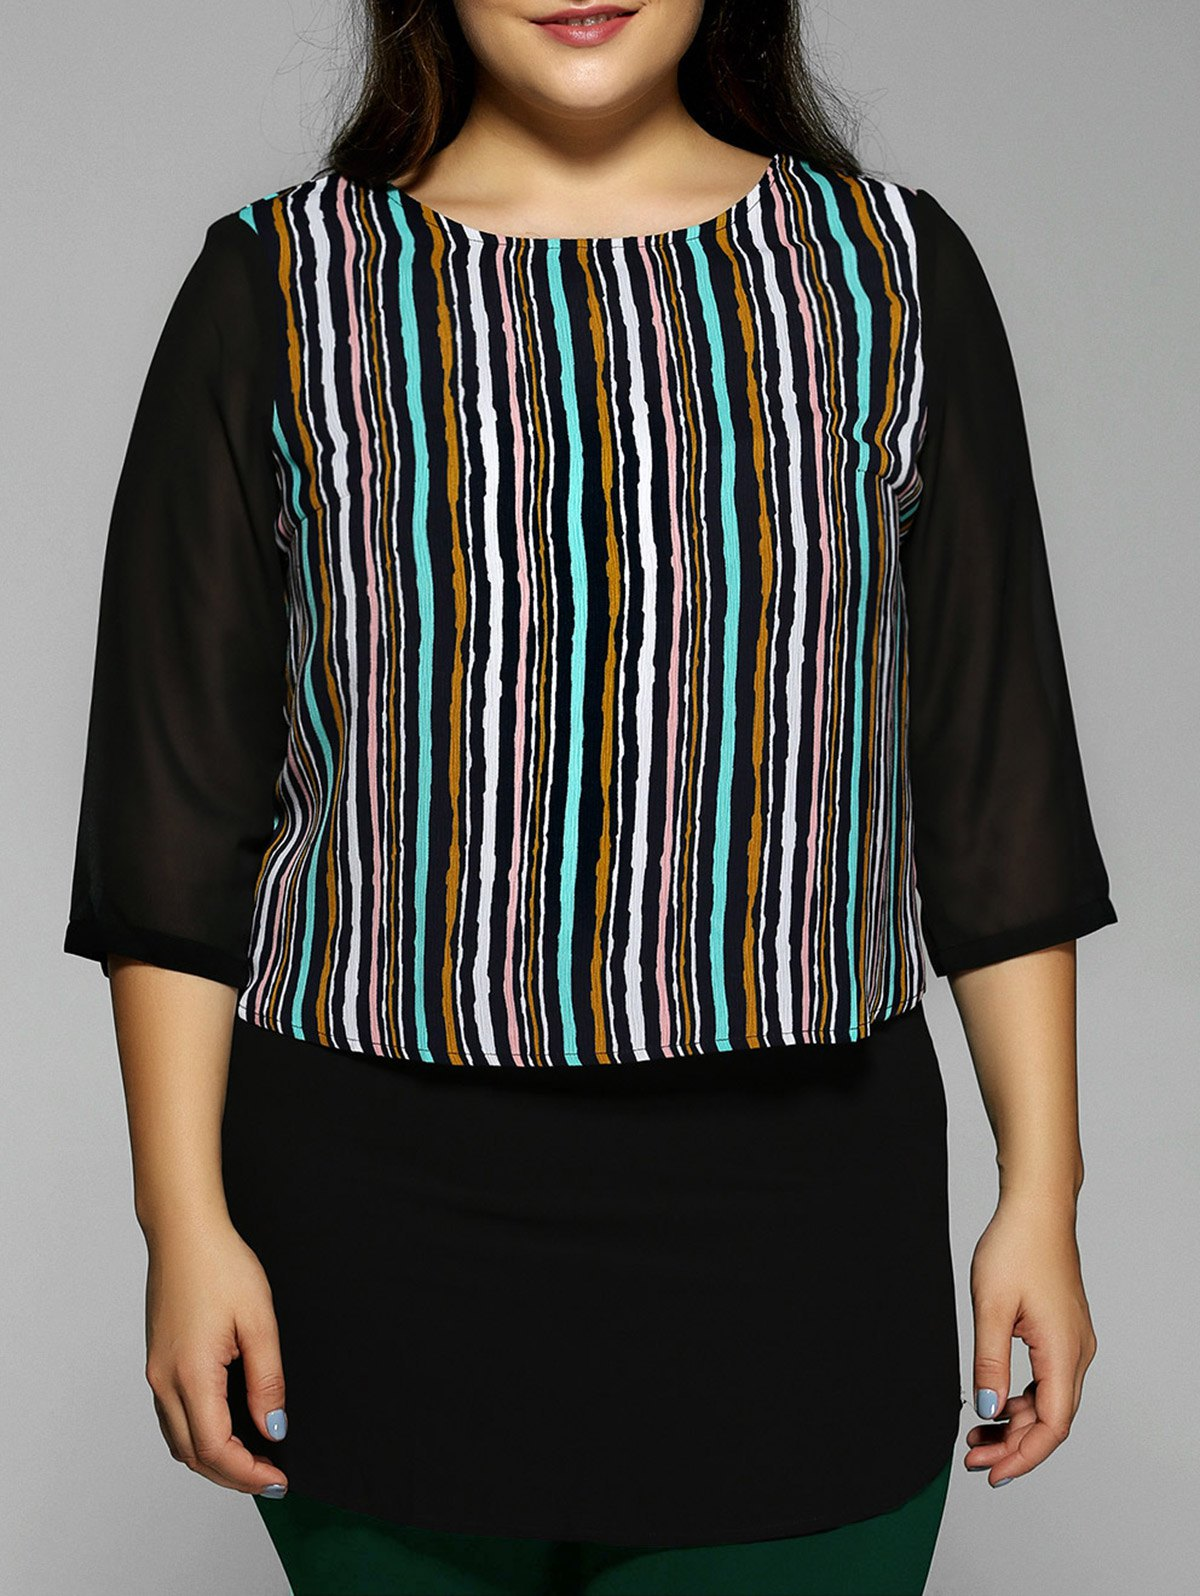 Plus Size Stripe Chiffon Blouse - BLACK 5XL